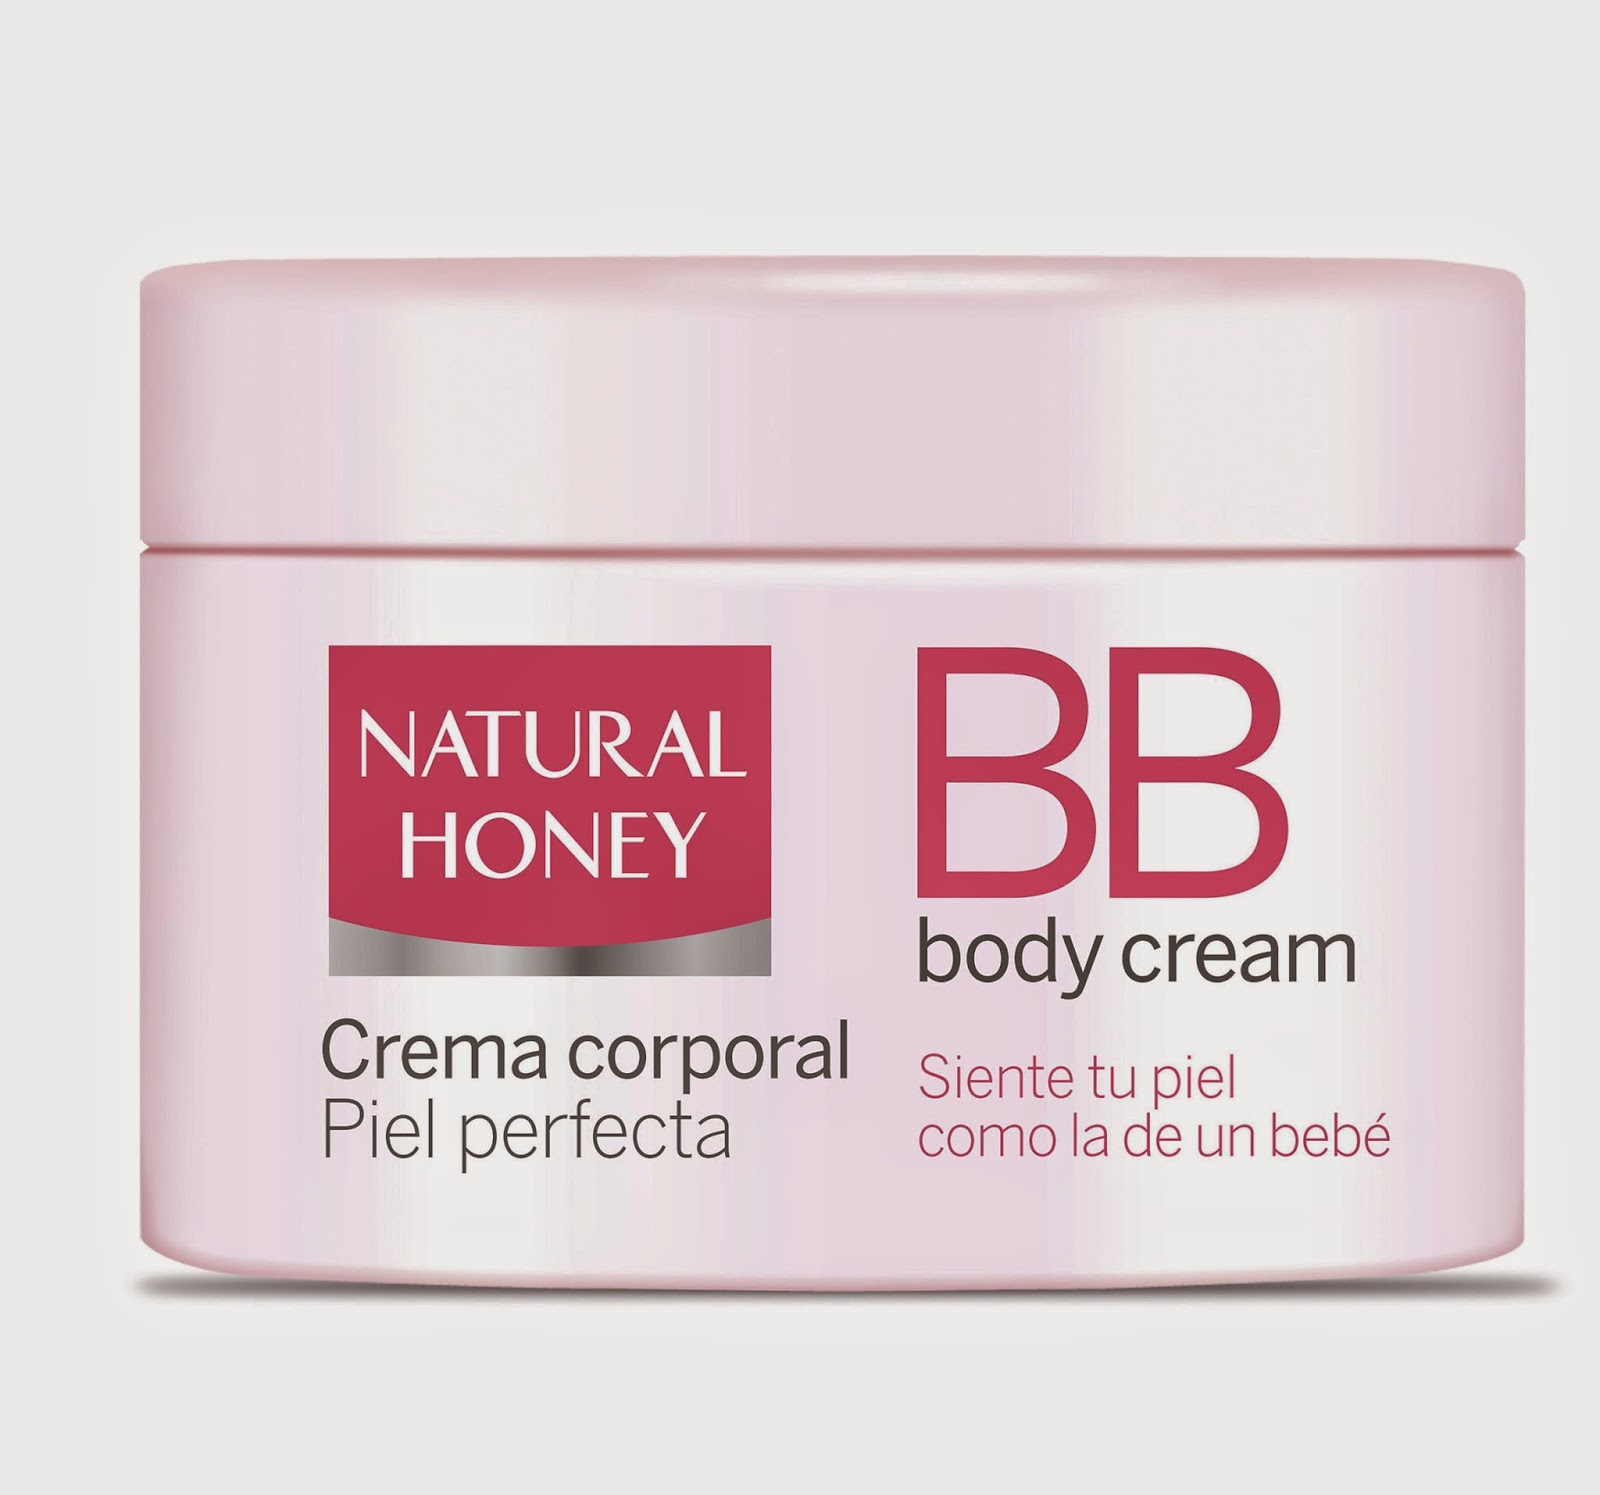 BB Body Cream Natural Honey,